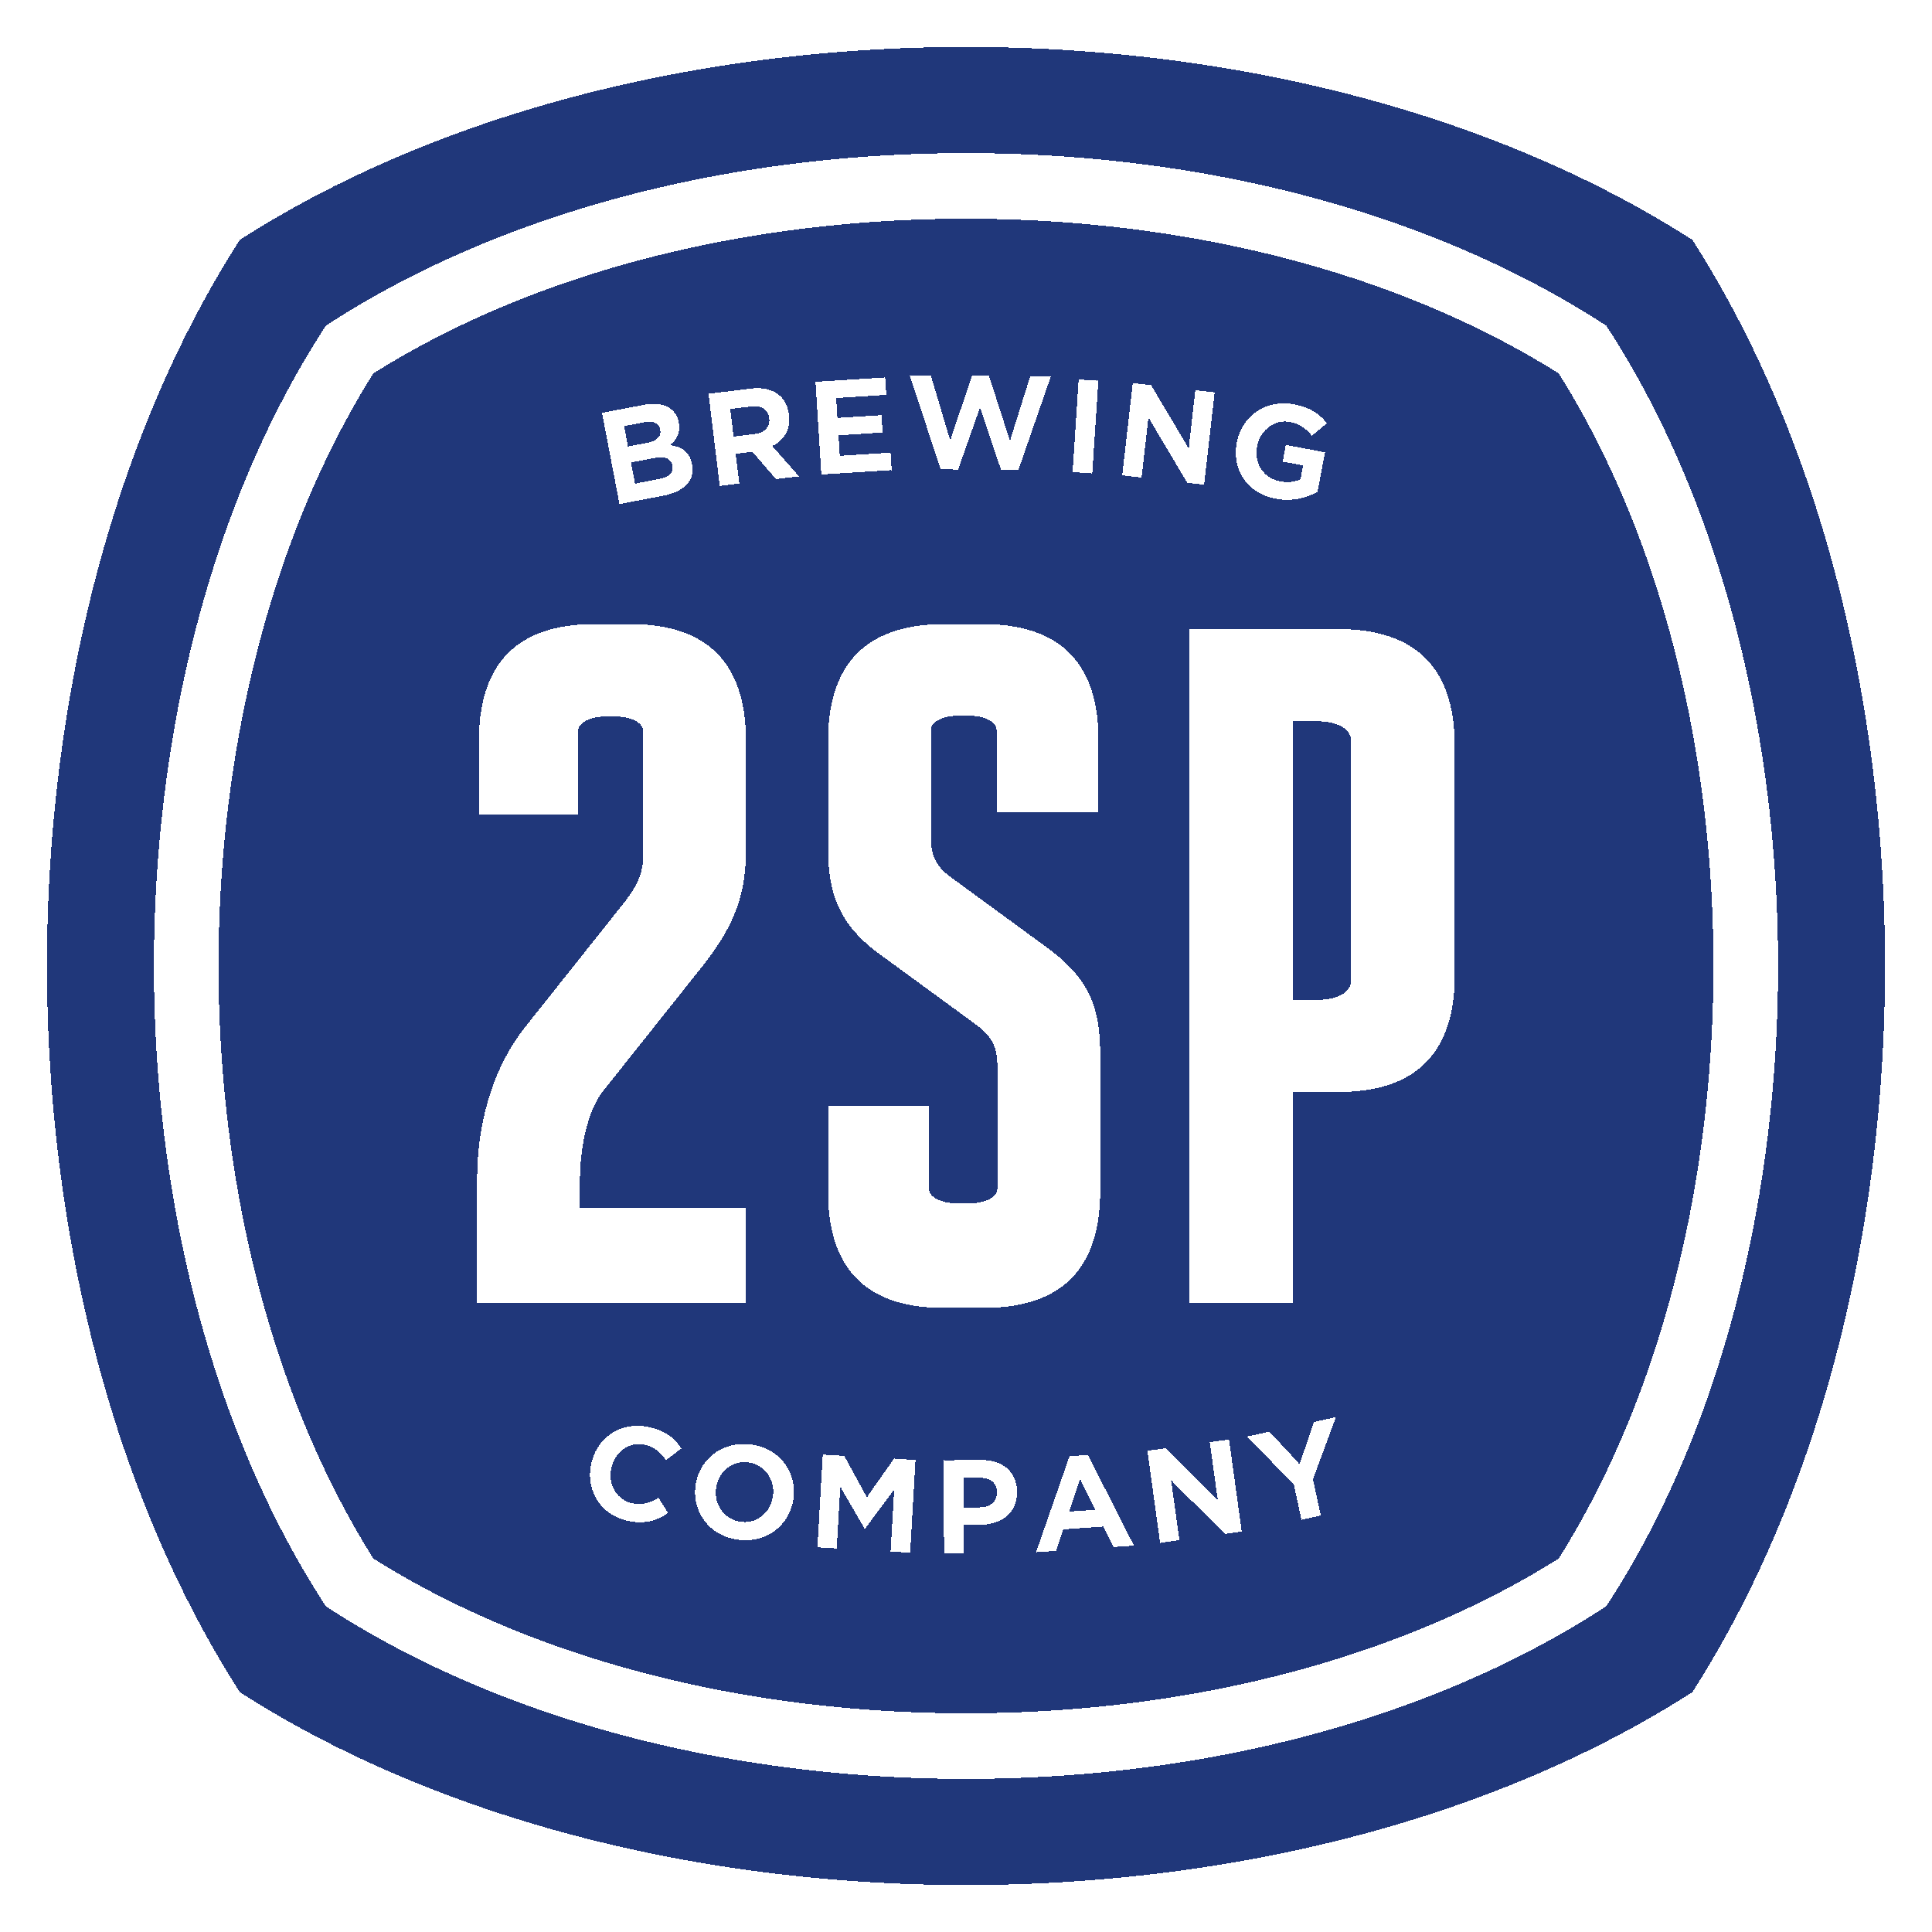 Industrial Era Style - The name 2SP sounded less like a brewery and more like an auto parts manufacturer. Our branding for 2SP plays up this unexpected connection by evoking the bold, no-frills graphics of early 20th-century industrial design.